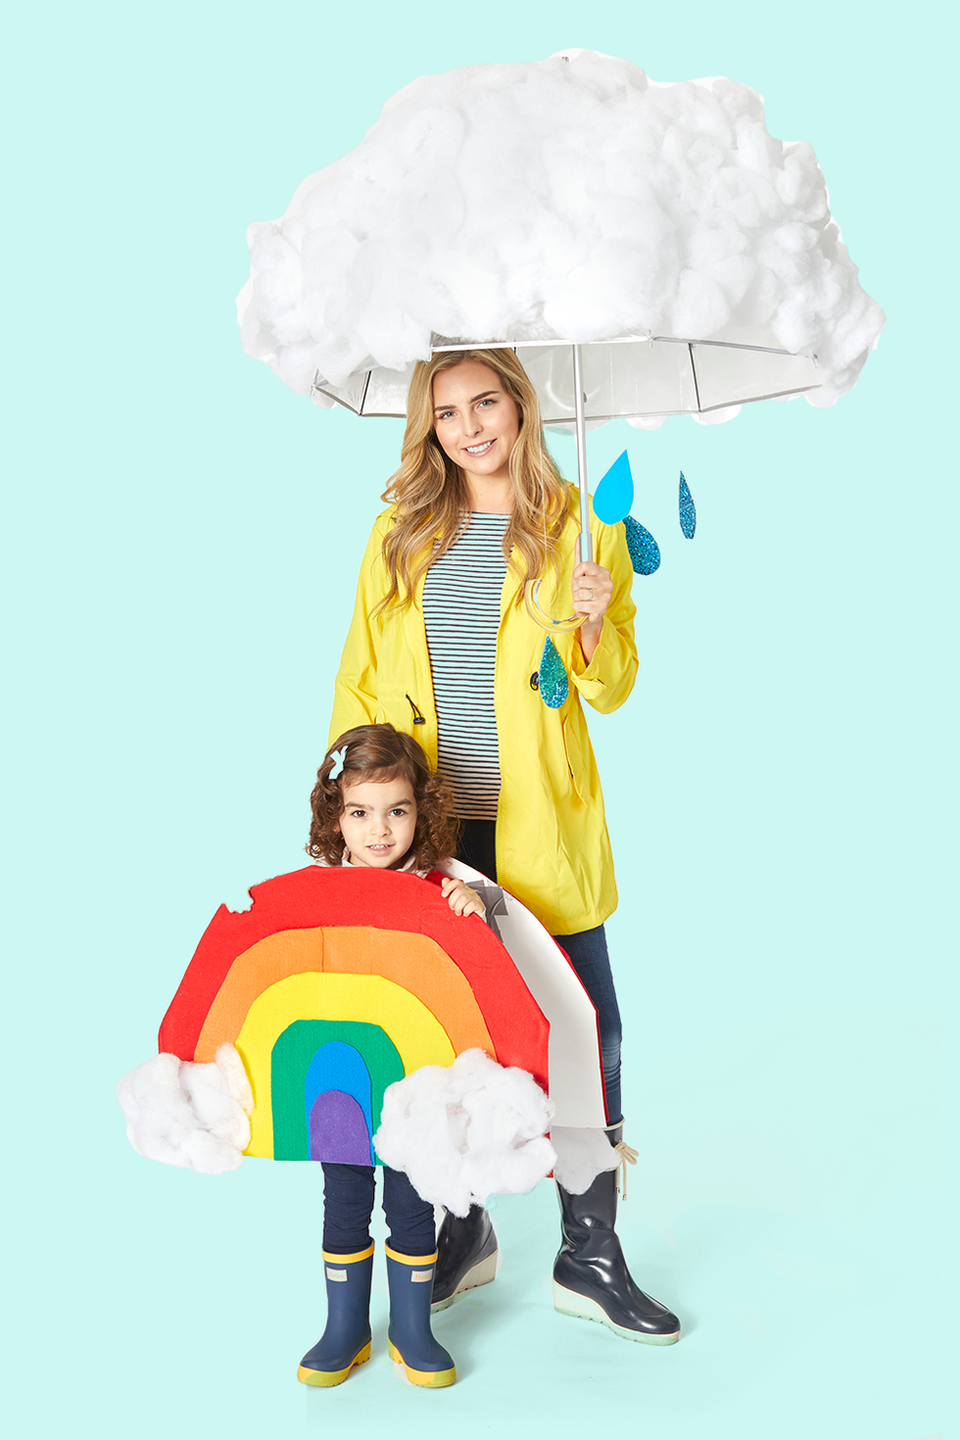 "<p>You can't have a rainbow without some rain, after all! This adorable mother-daughter duo costume will add some color to your Halloween — not to mention it will make for a <a href=""https://www.goodhousekeeping.com/holidays/halloween-ideas/g22062770/halloween-crafts-for-kids/"" rel=""nofollow noopener"" target=""_blank"" data-ylk=""slk:fun DIY craft project"" class=""link rapid-noclick-resp"">fun DIY craft project</a>. </p>"